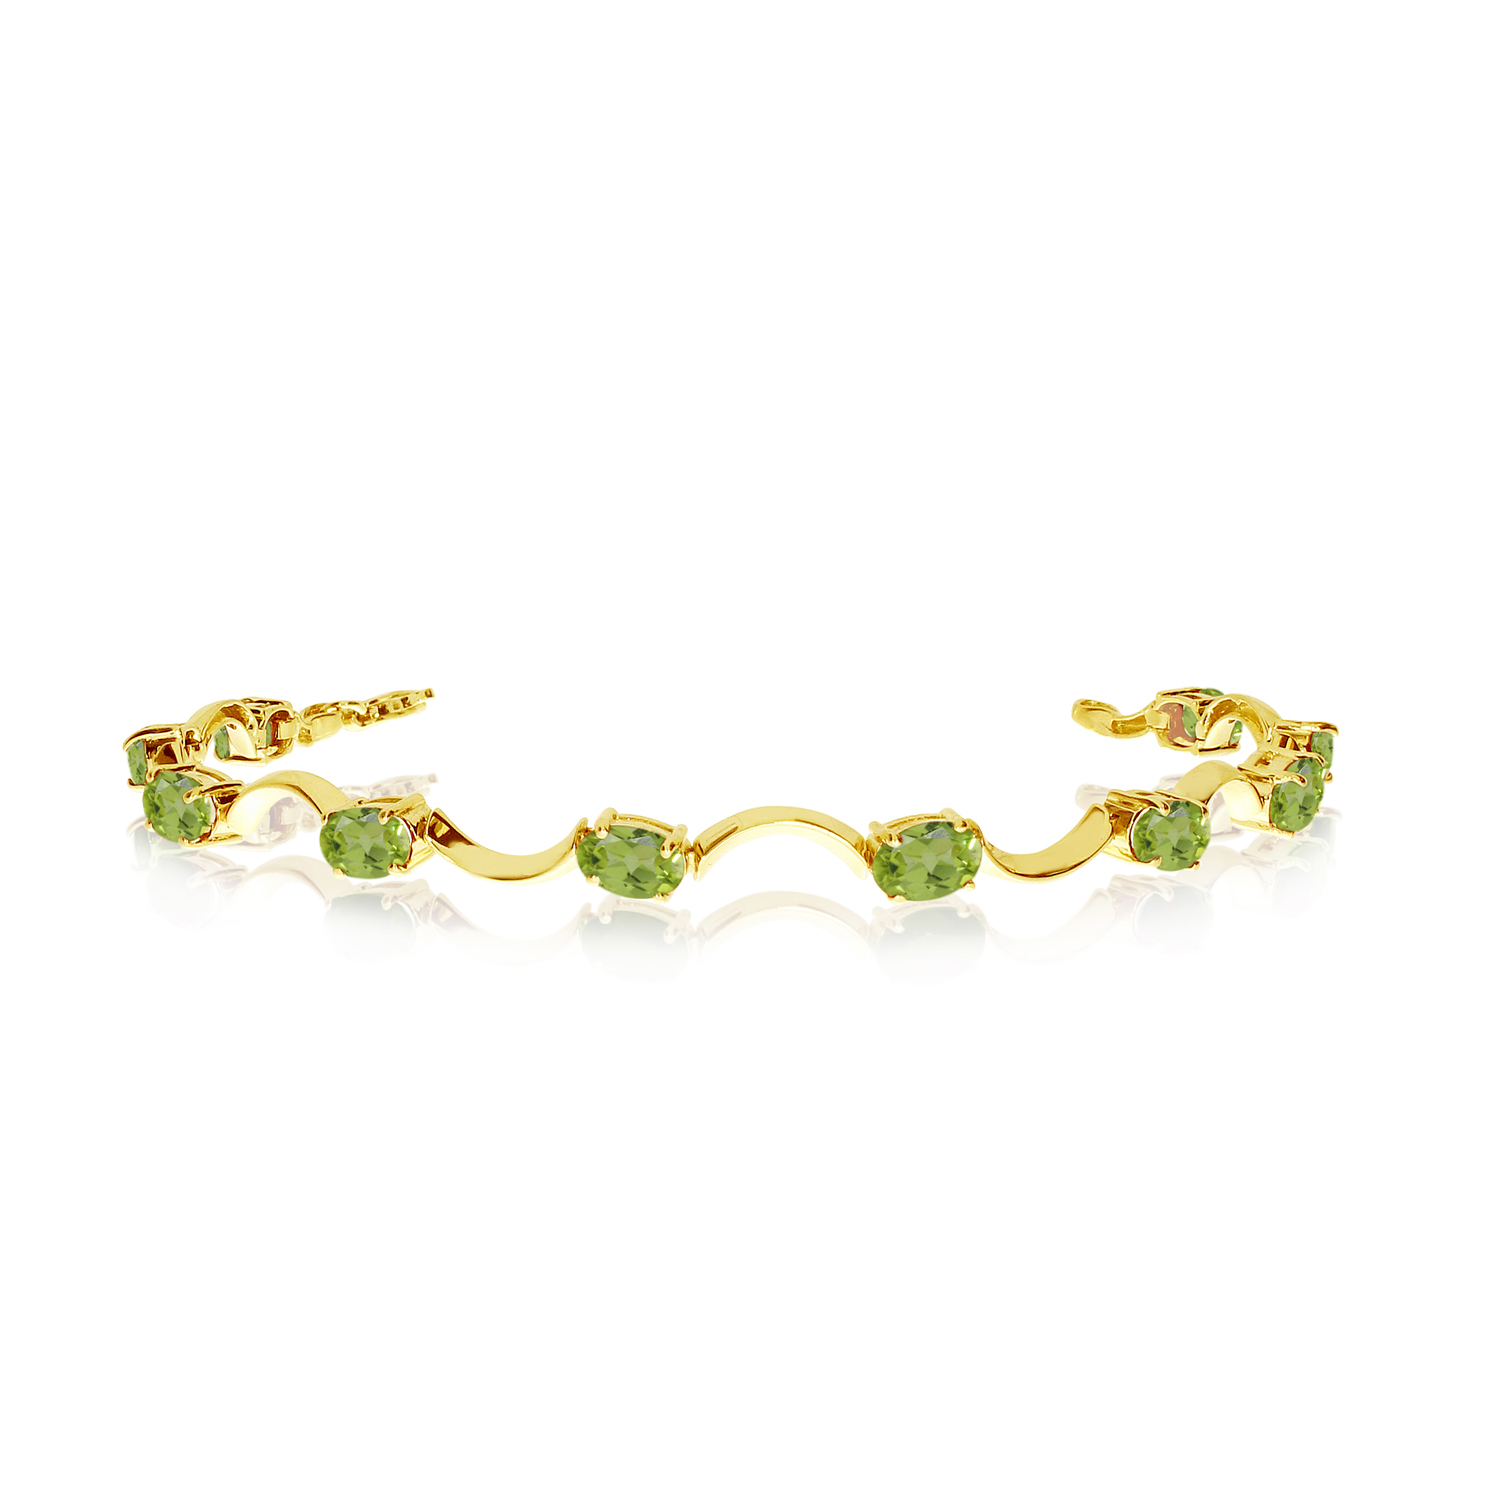 14K Yellow Gold Oval Peridot Curved Bar Bracelet by